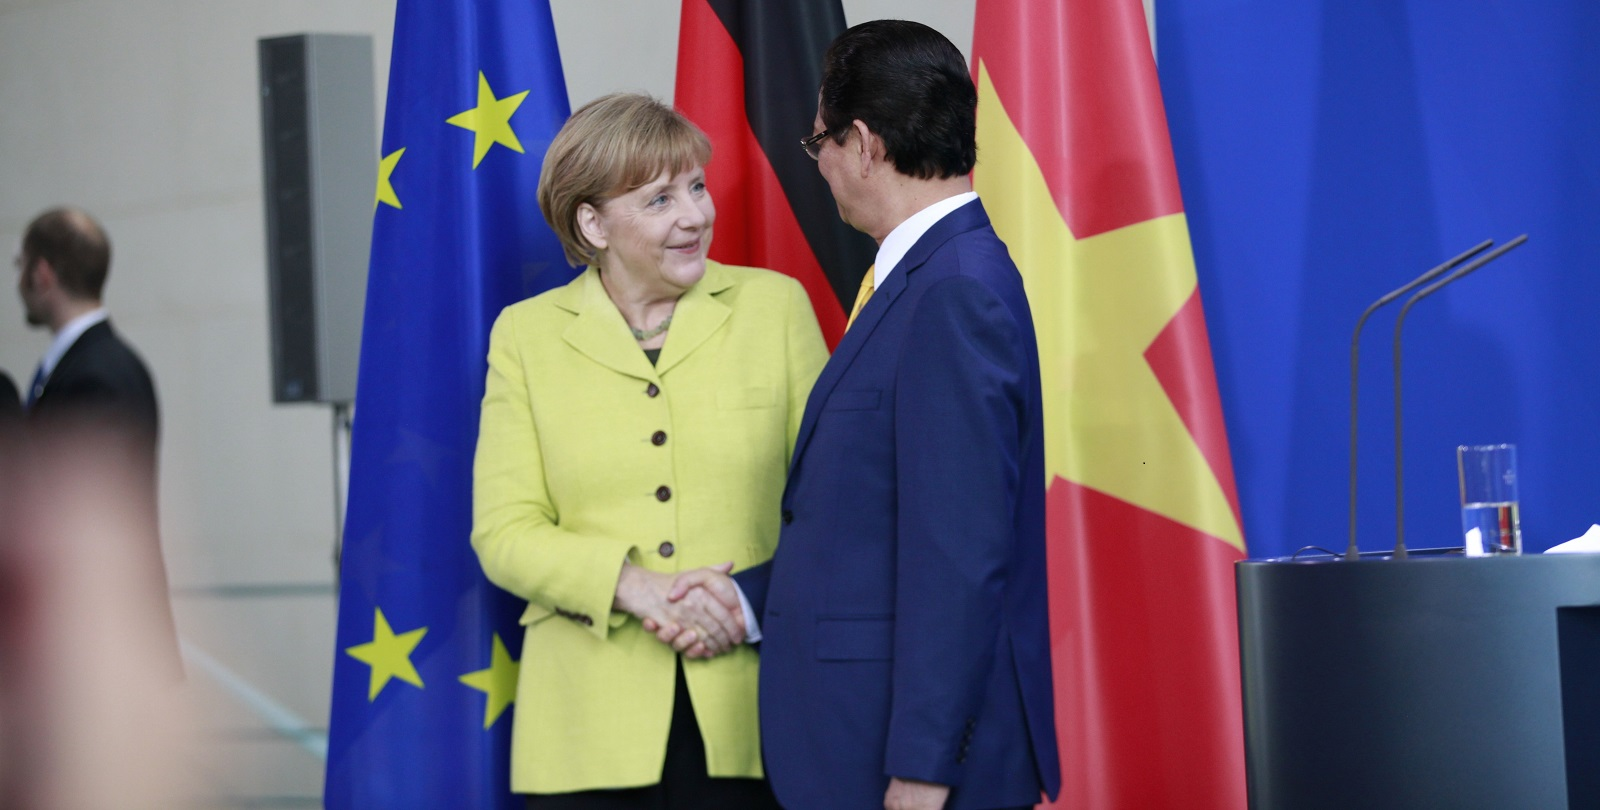 Germany has been one of Vietnam's best friends in Europe. (Photo: Simone Kuhlmey/Getty Images)